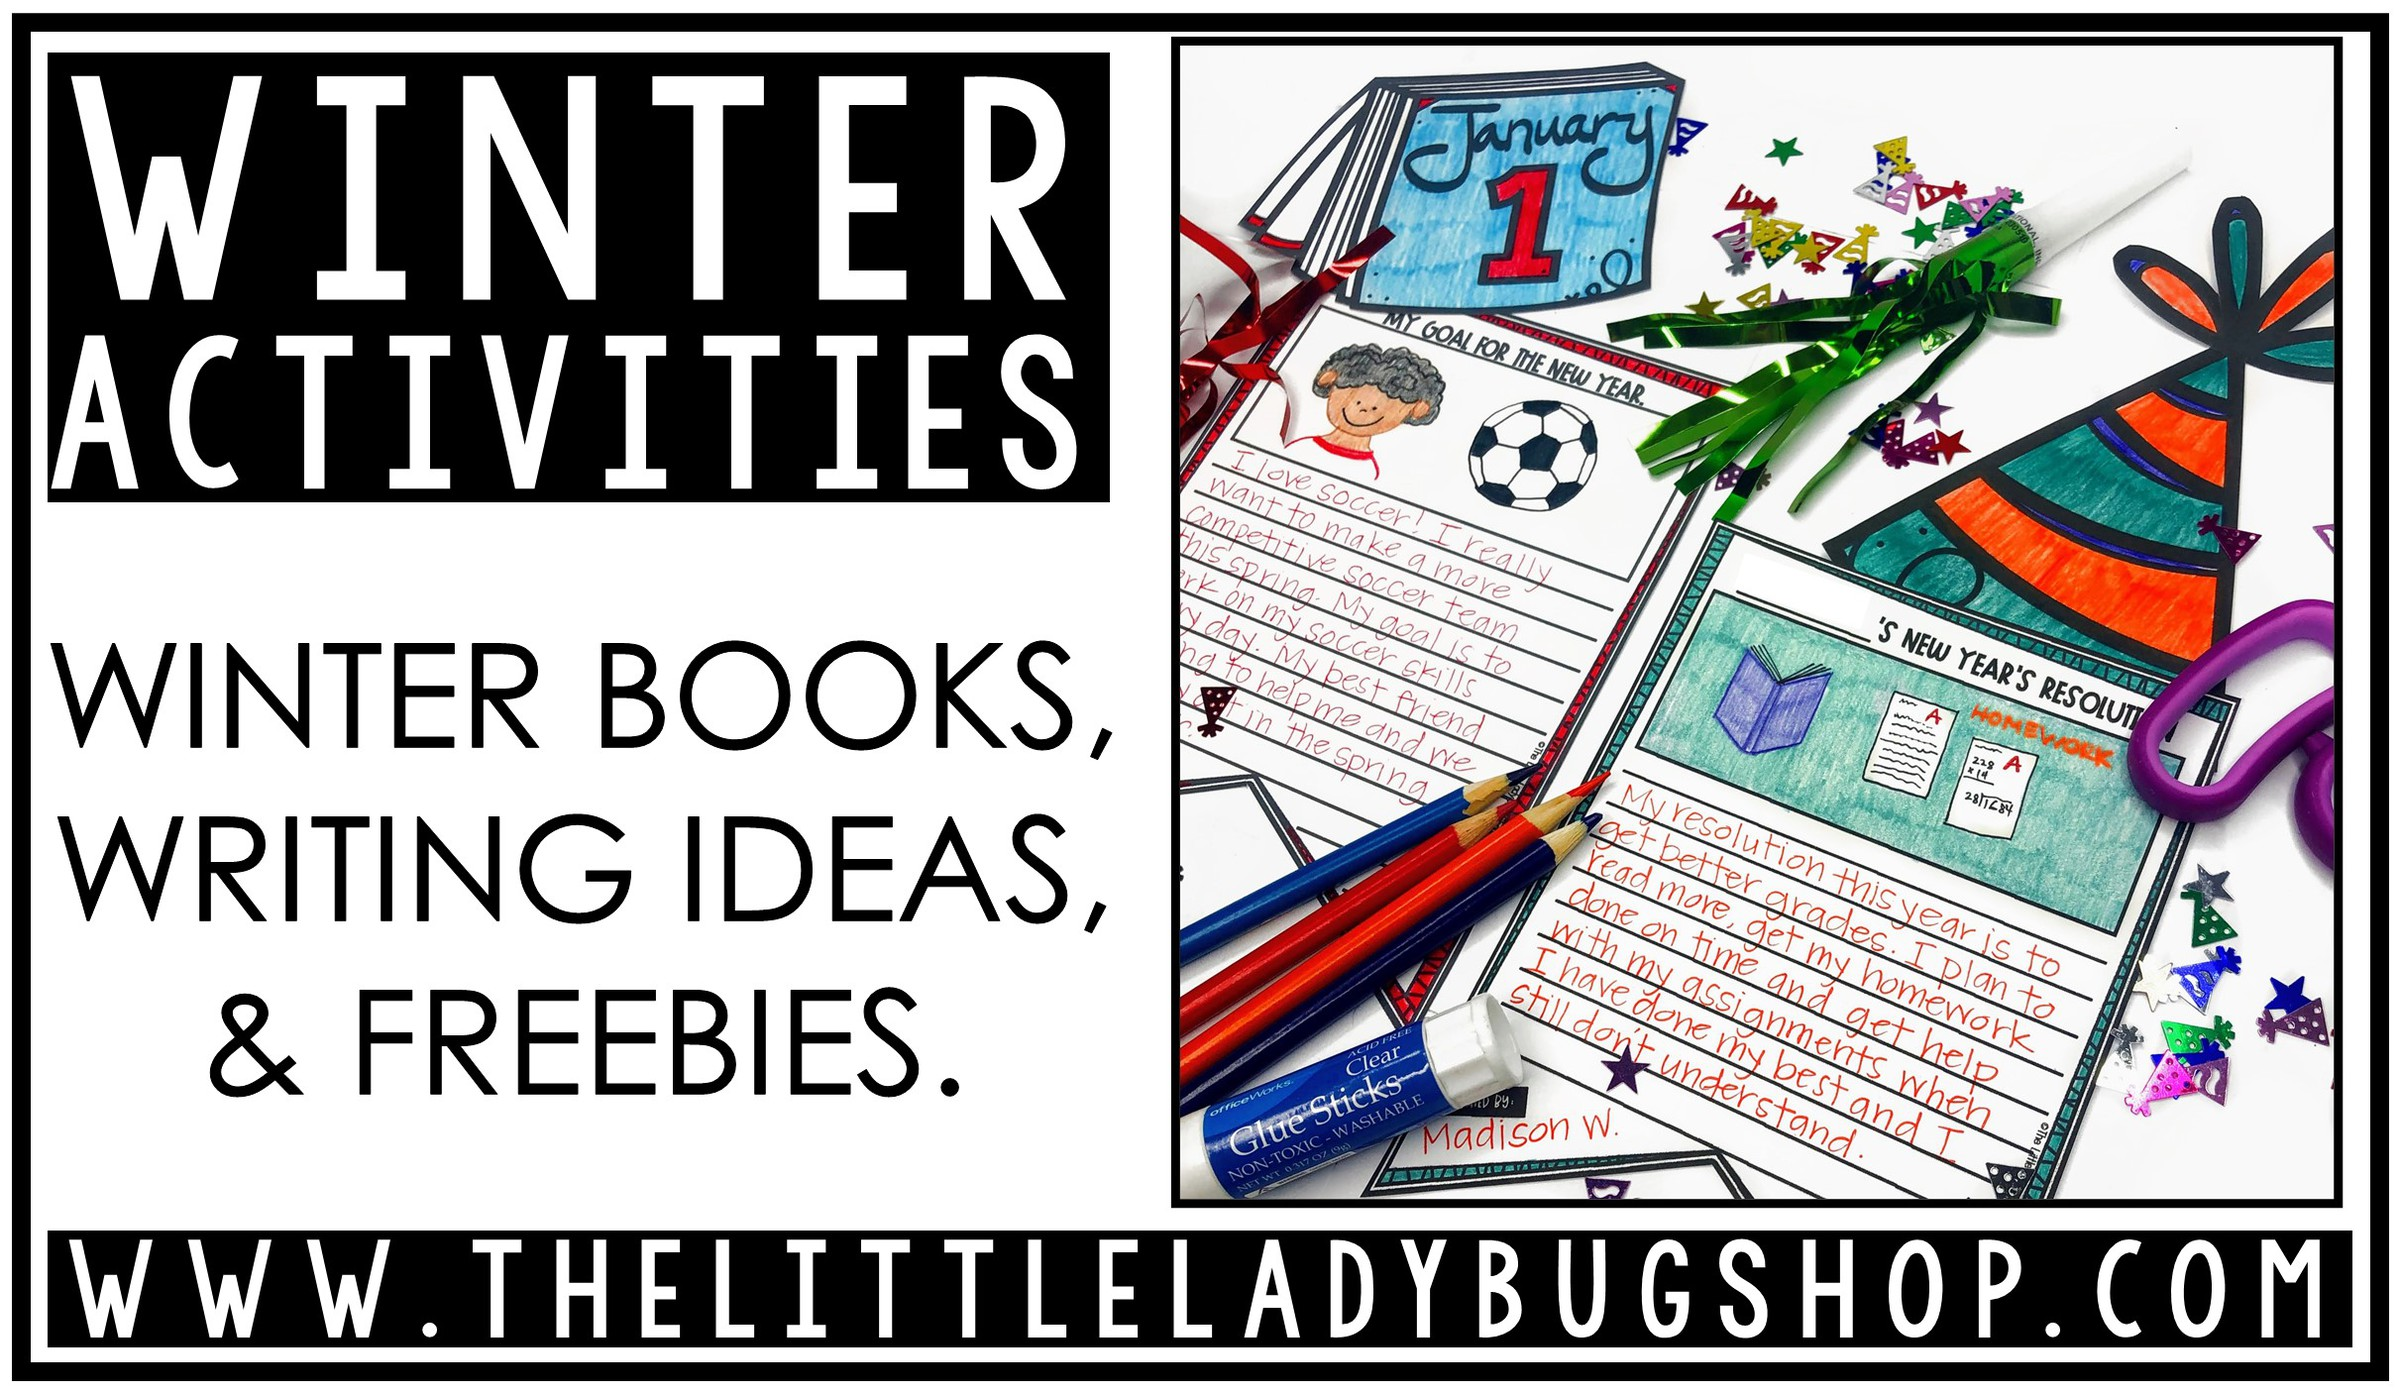 Winter Activities to Keep Your Students Engaged